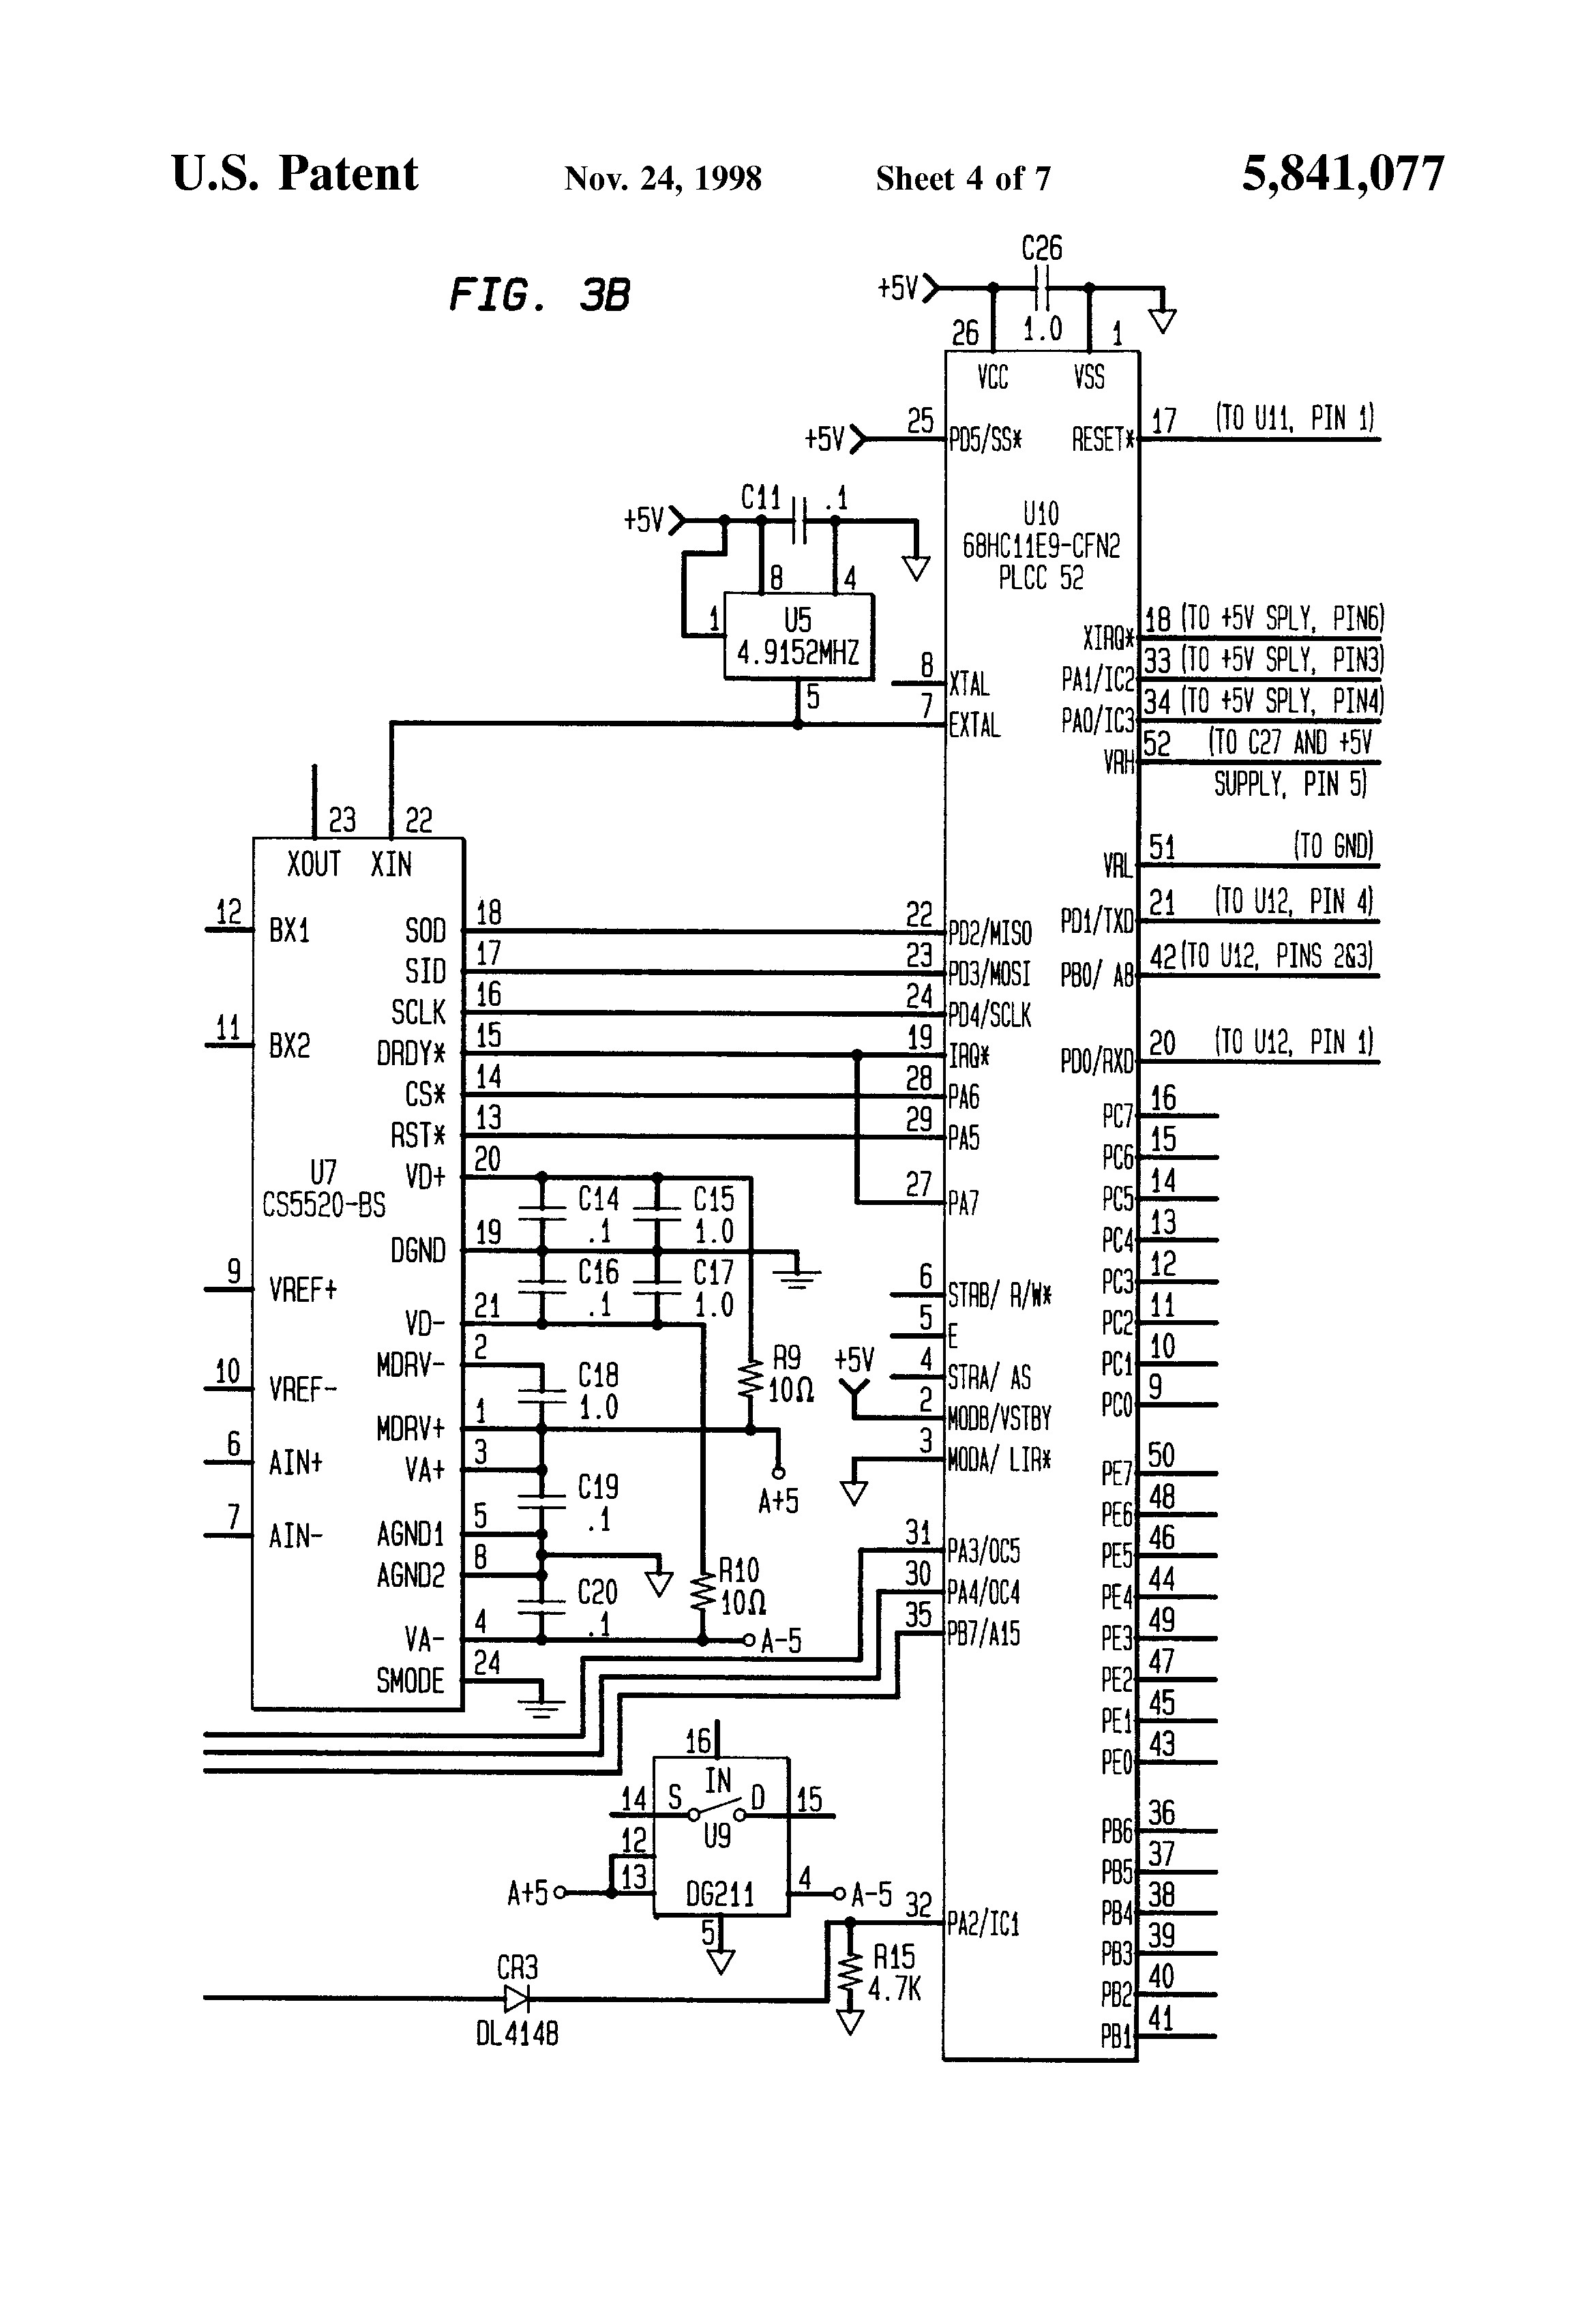 wiring diagram white white rodgers 50e47 843 wiring diagram | free wiring diagram